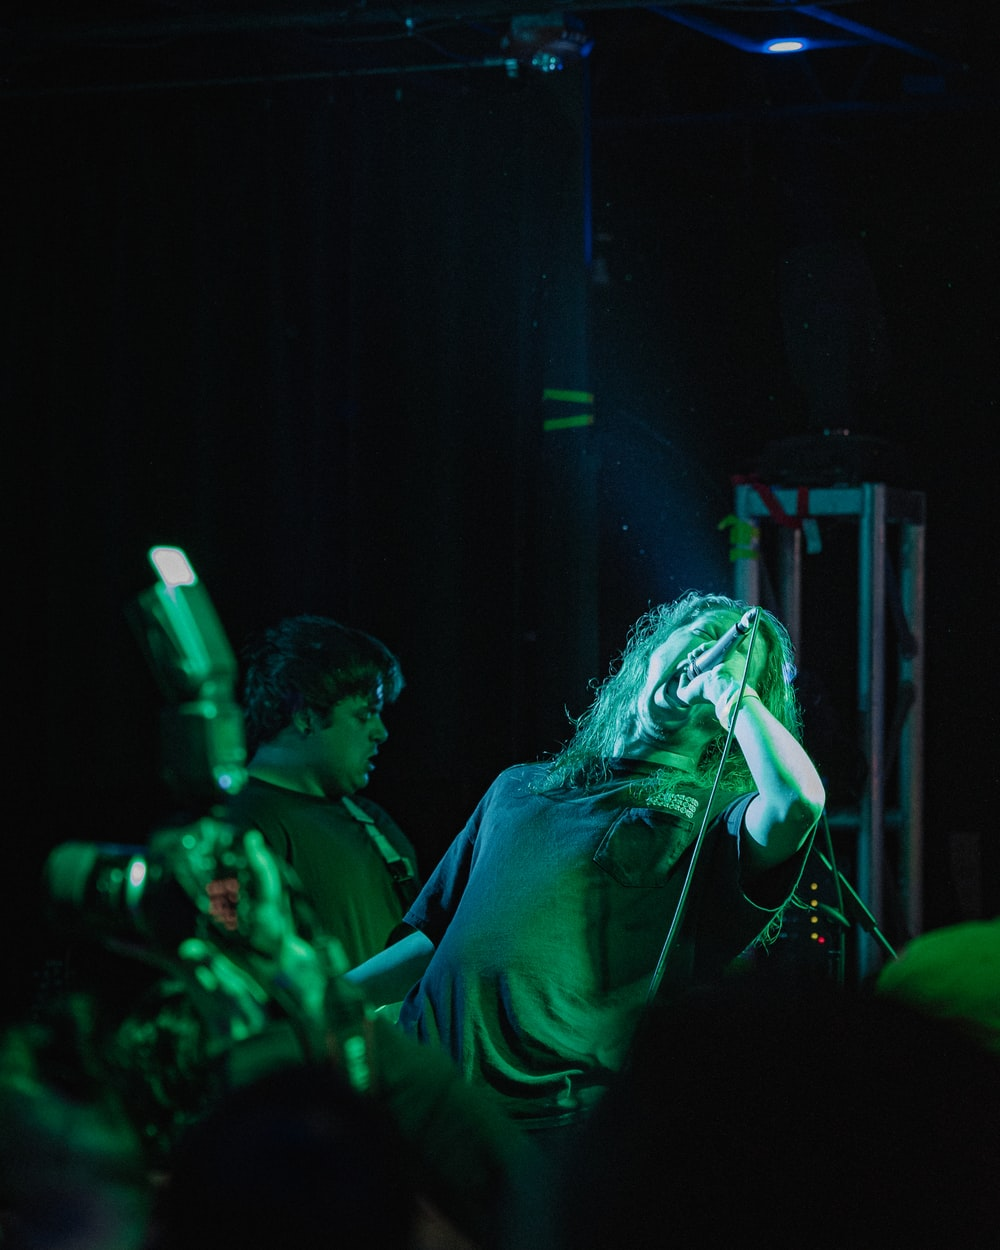 woman singing on stage in front of people